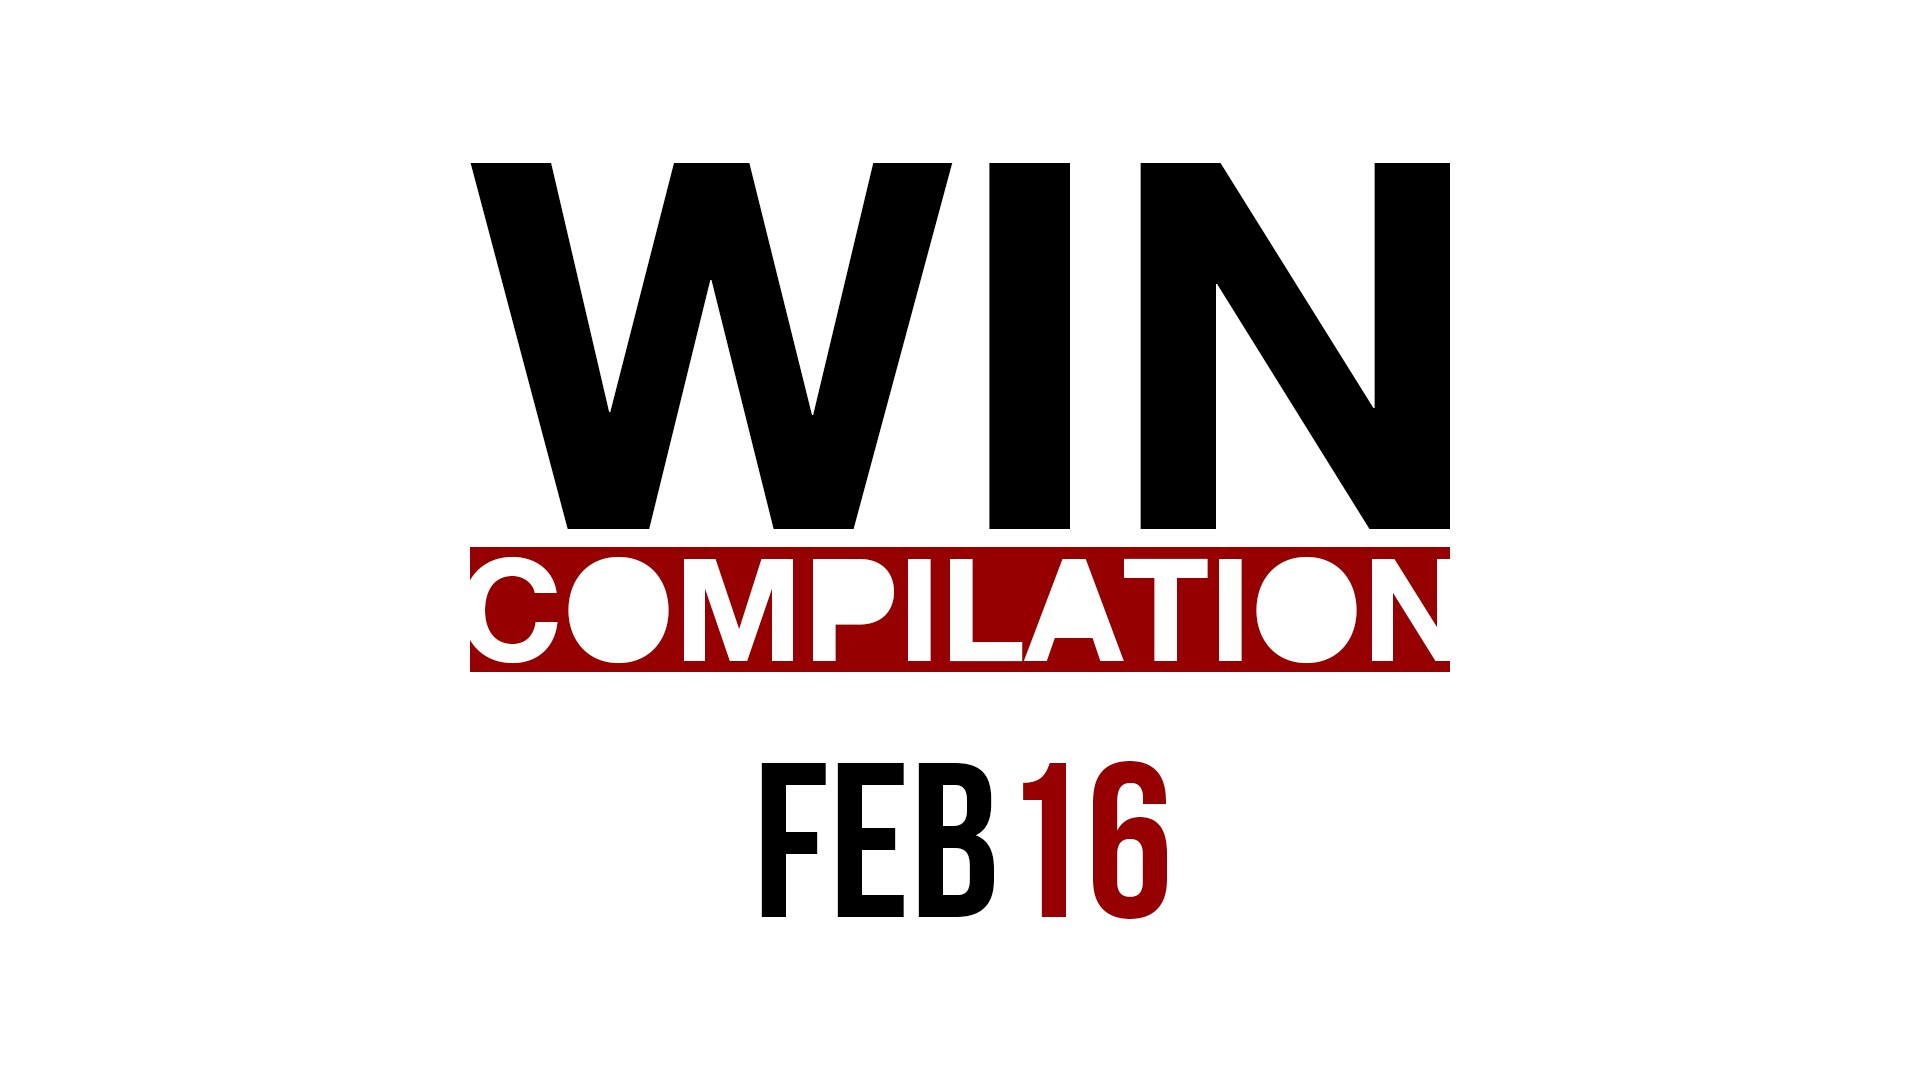 WIN Compilation February 2016